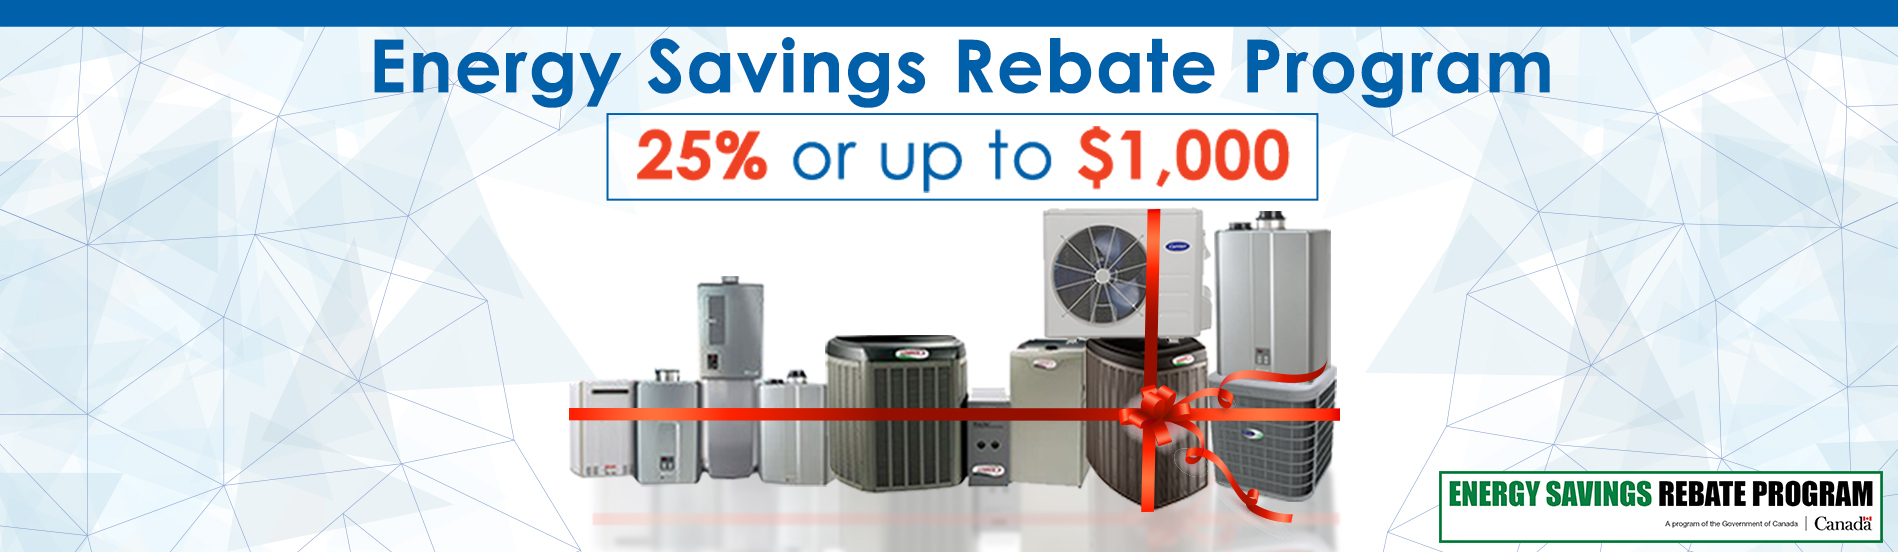 Energy Rebate Savings